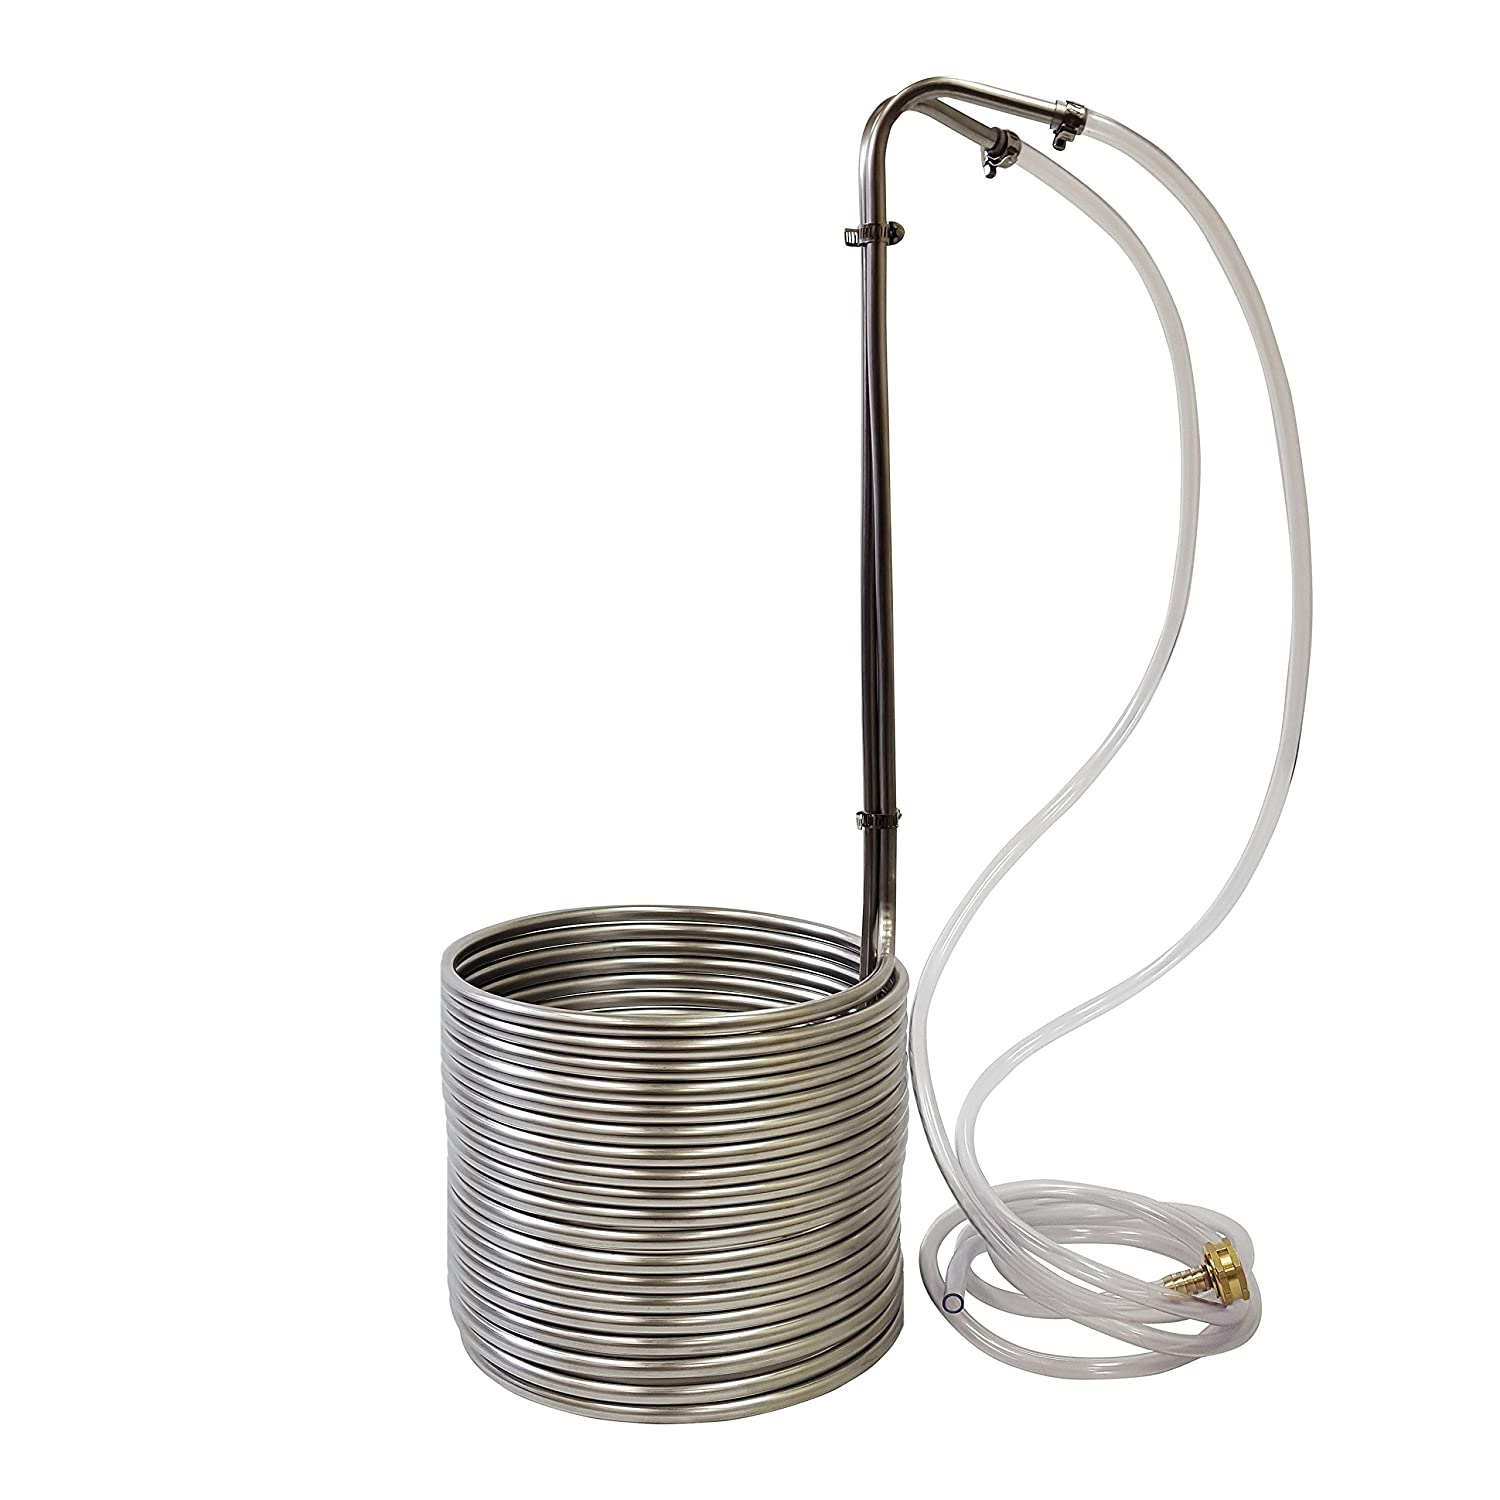 "NY Brew Supply Stainless Steel Wort Chiller, 3/8"" x 50', Silver"